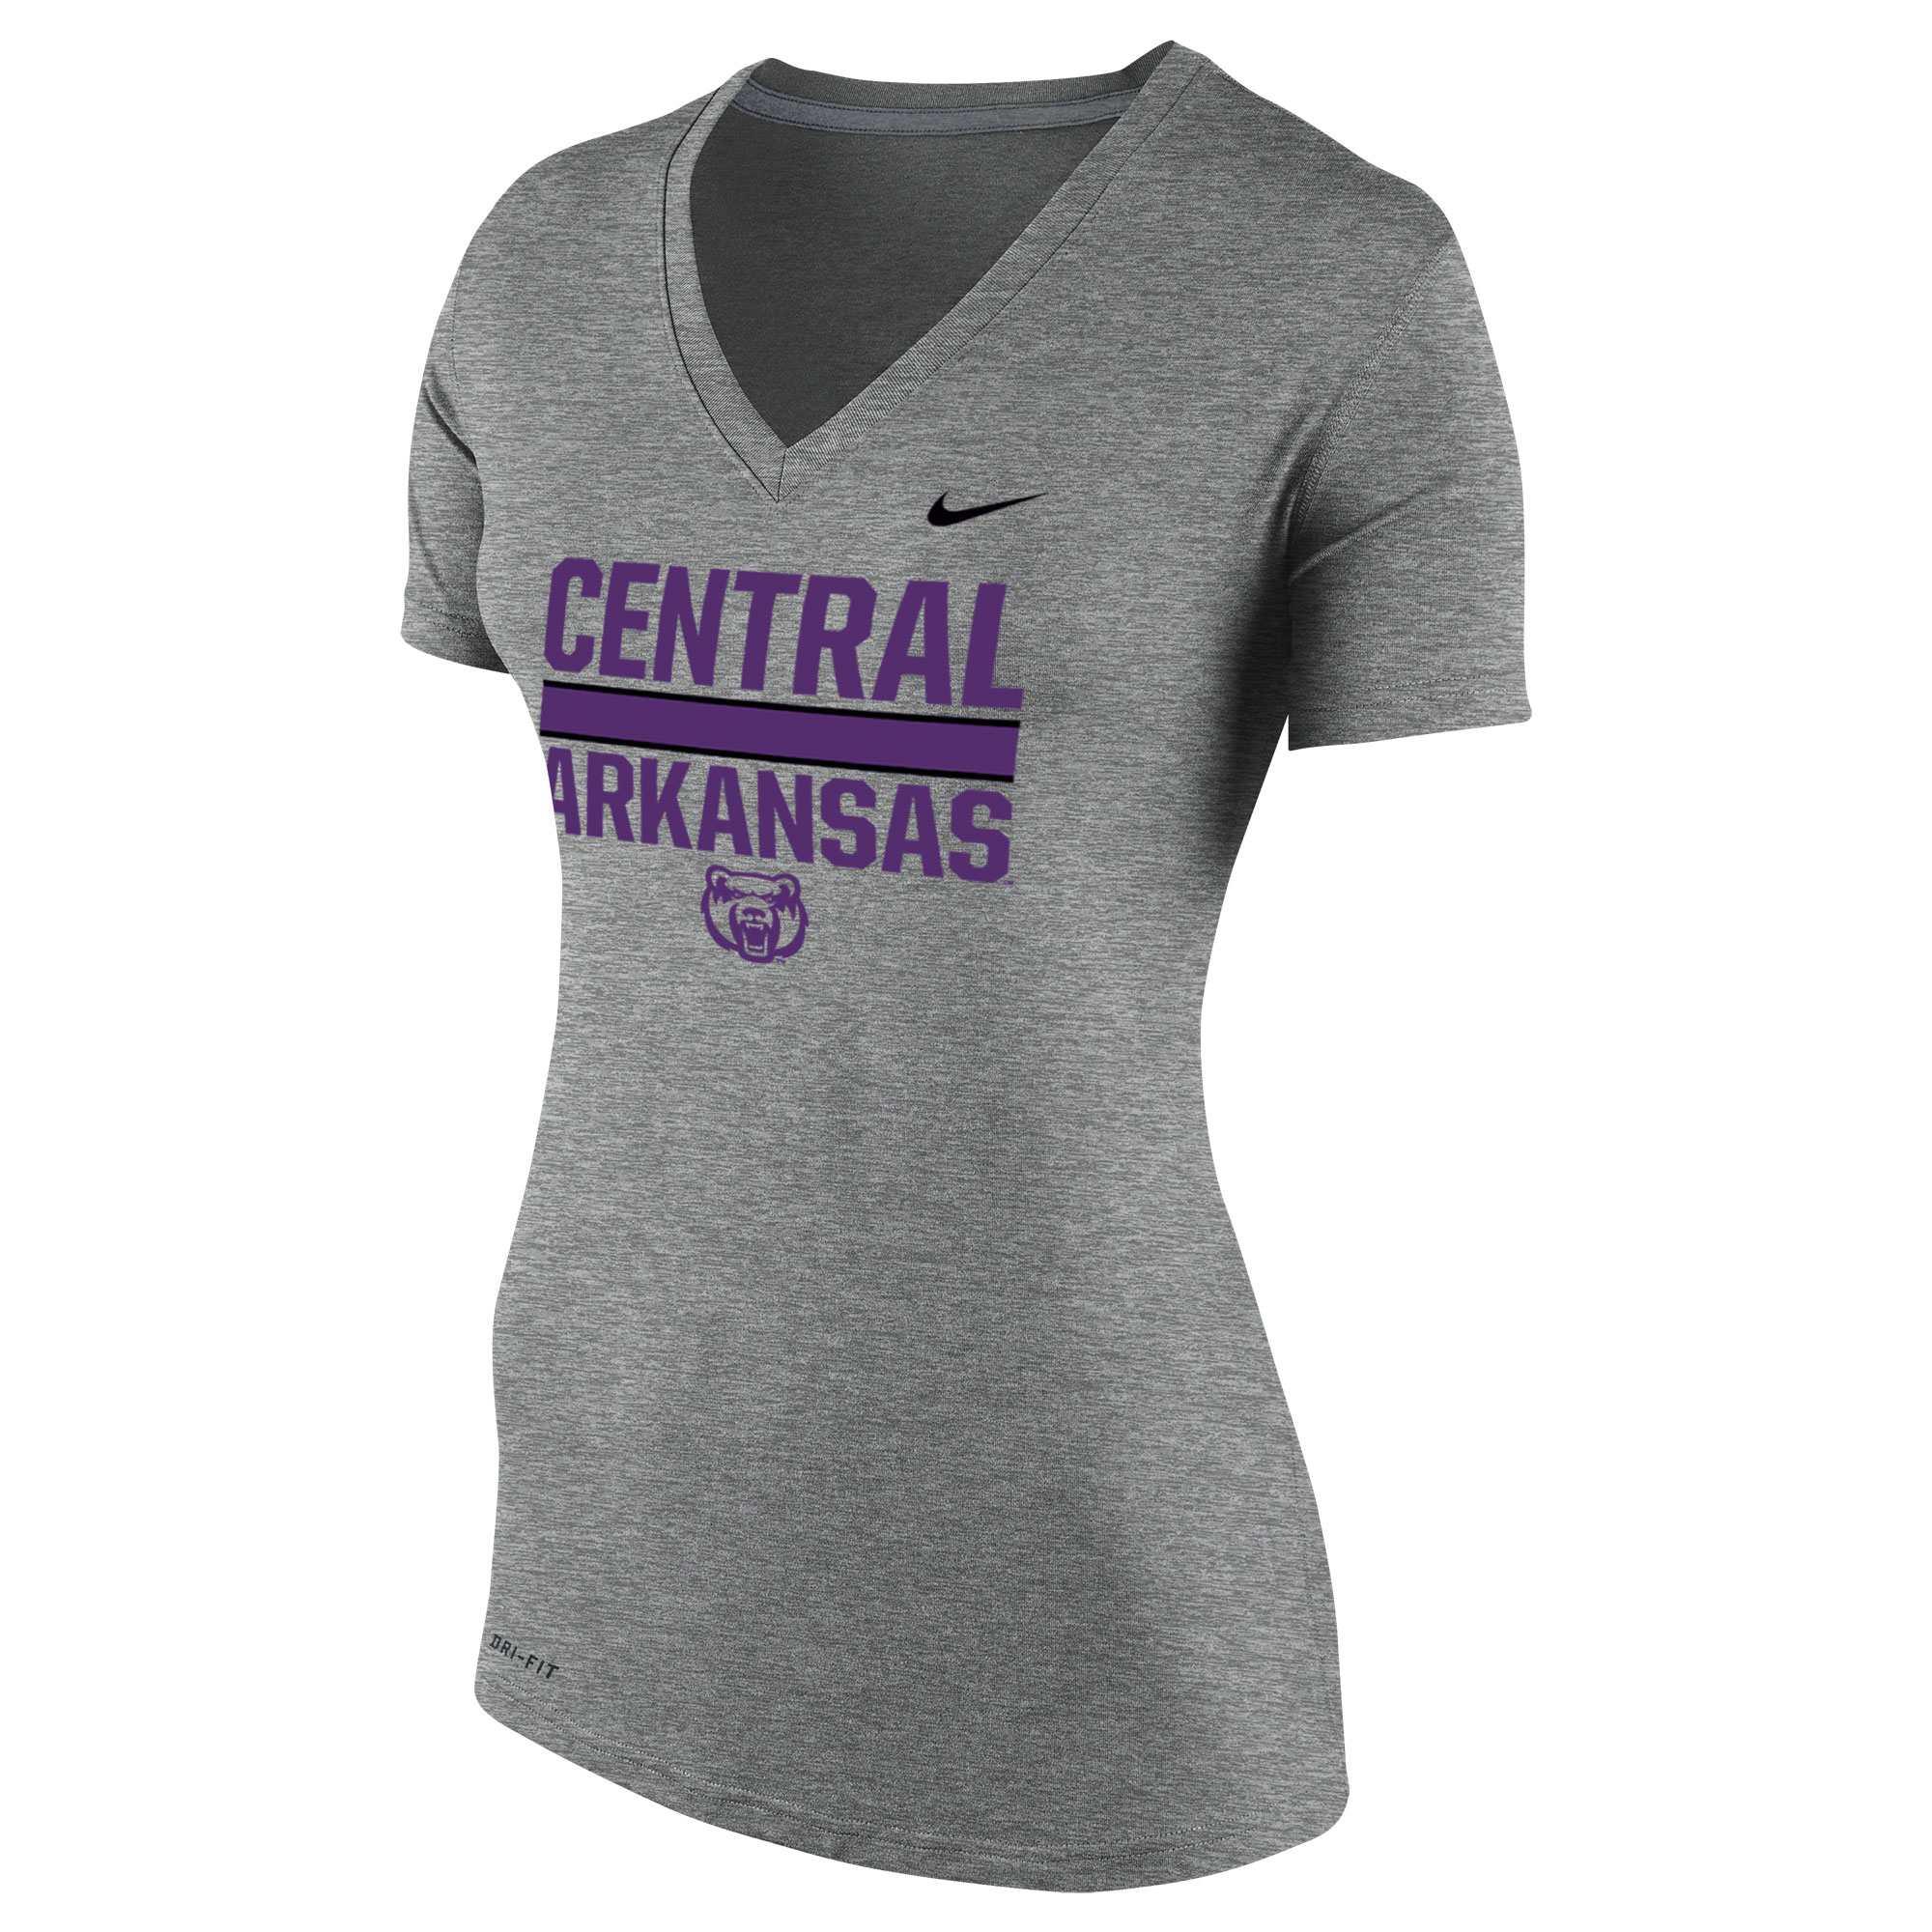 Central Arkansas DriFit Vneck Tee